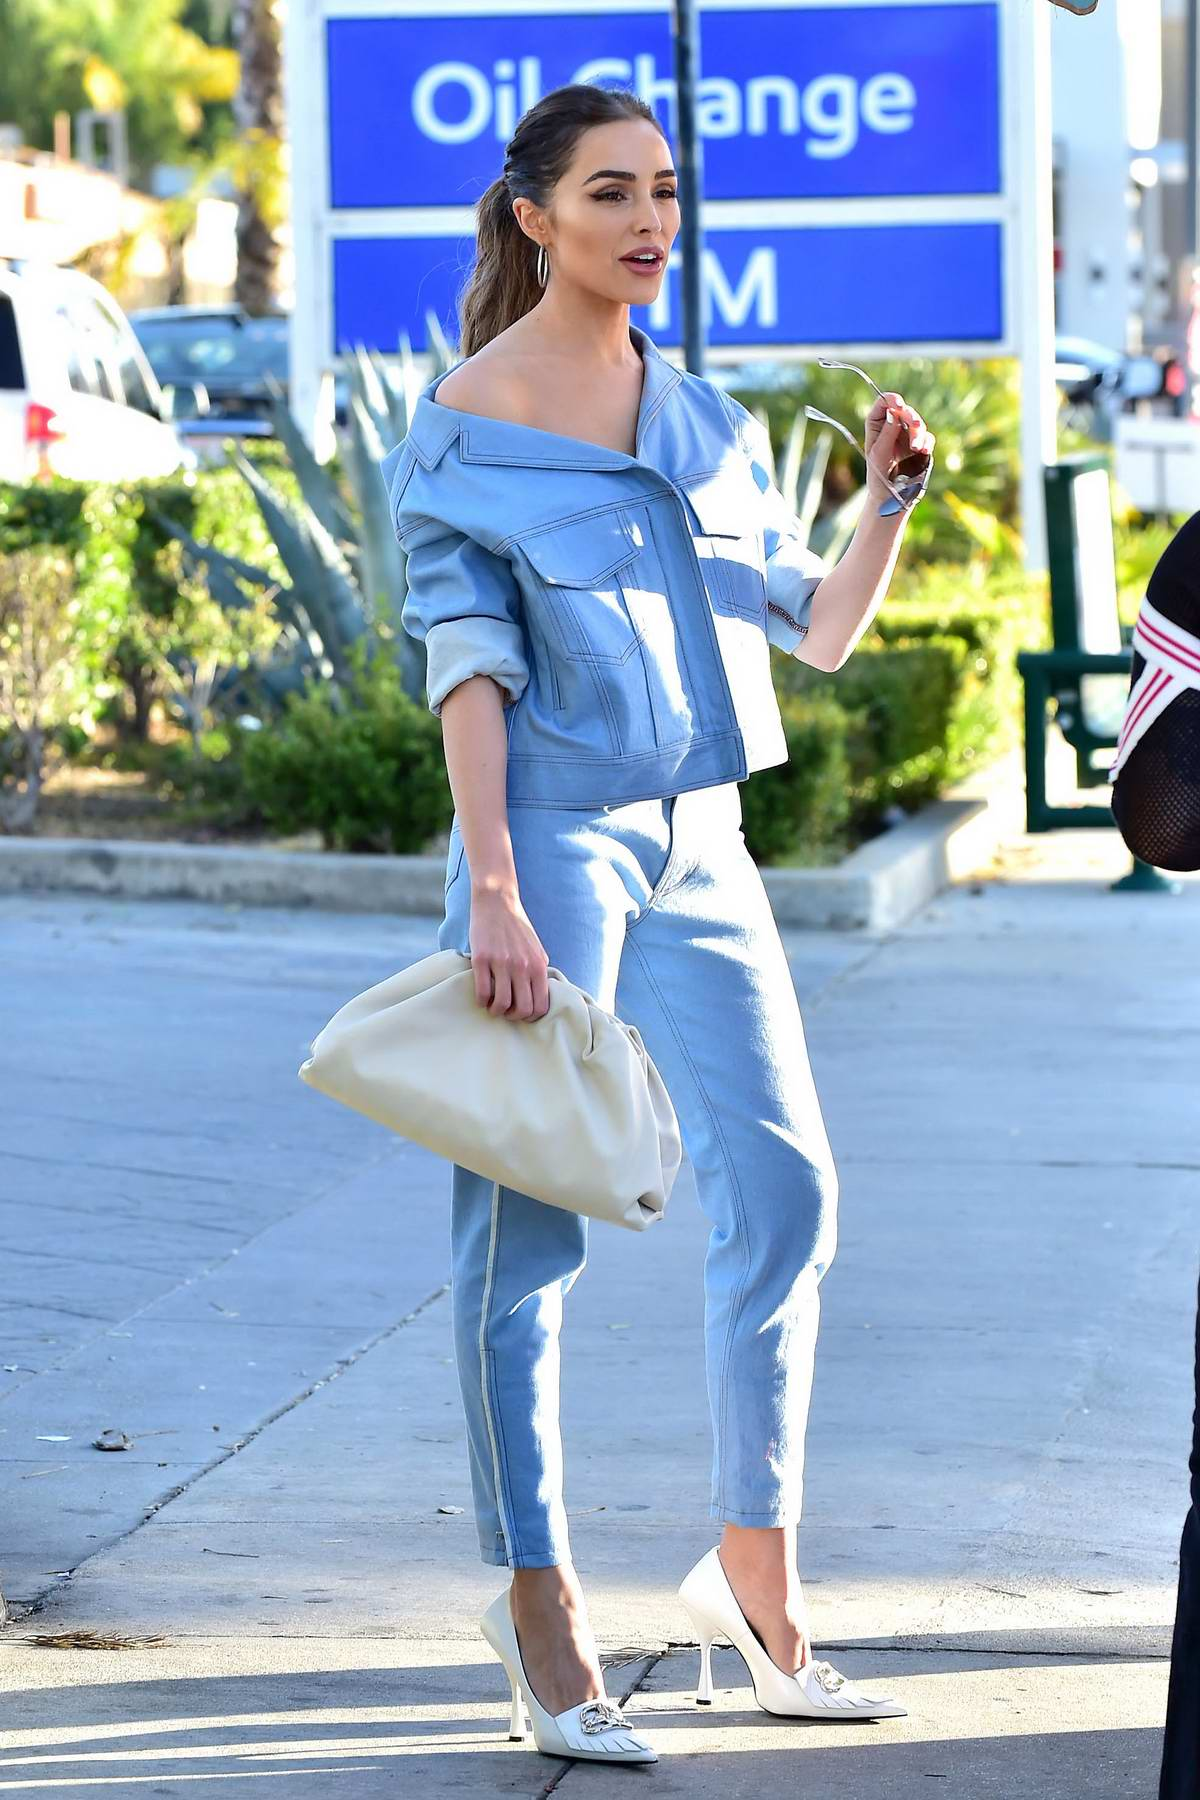 Olivia Culpo looks stylish in blue while waiting for her ride in Los Angeles